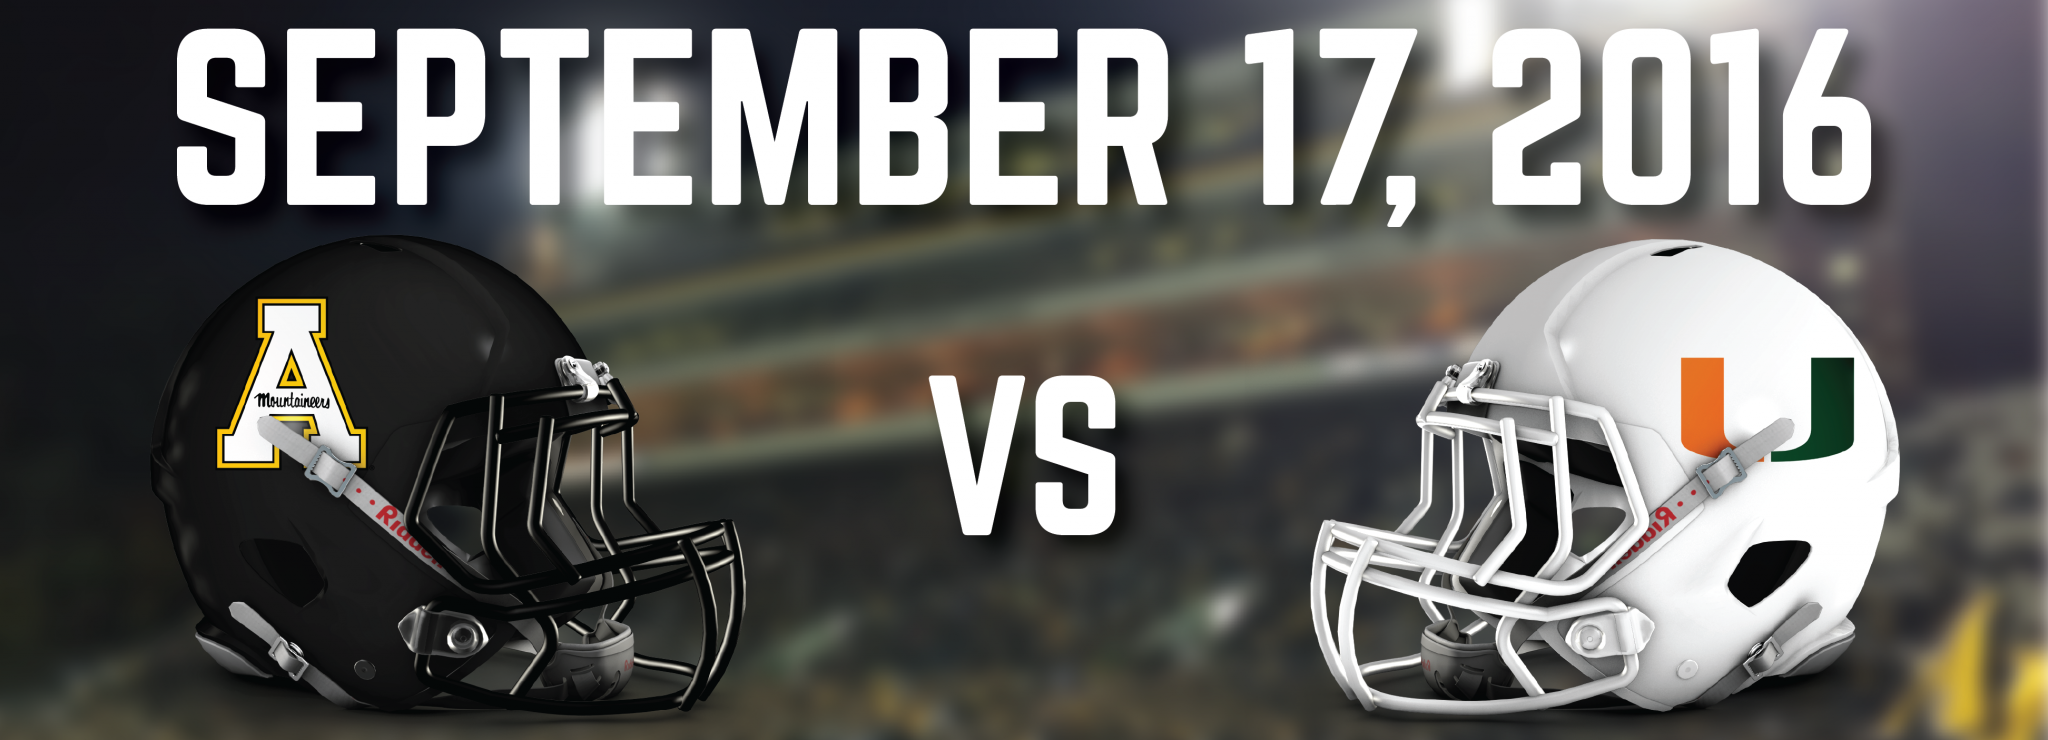 Confirmed: Miami Hurricanes will play App State in 2016